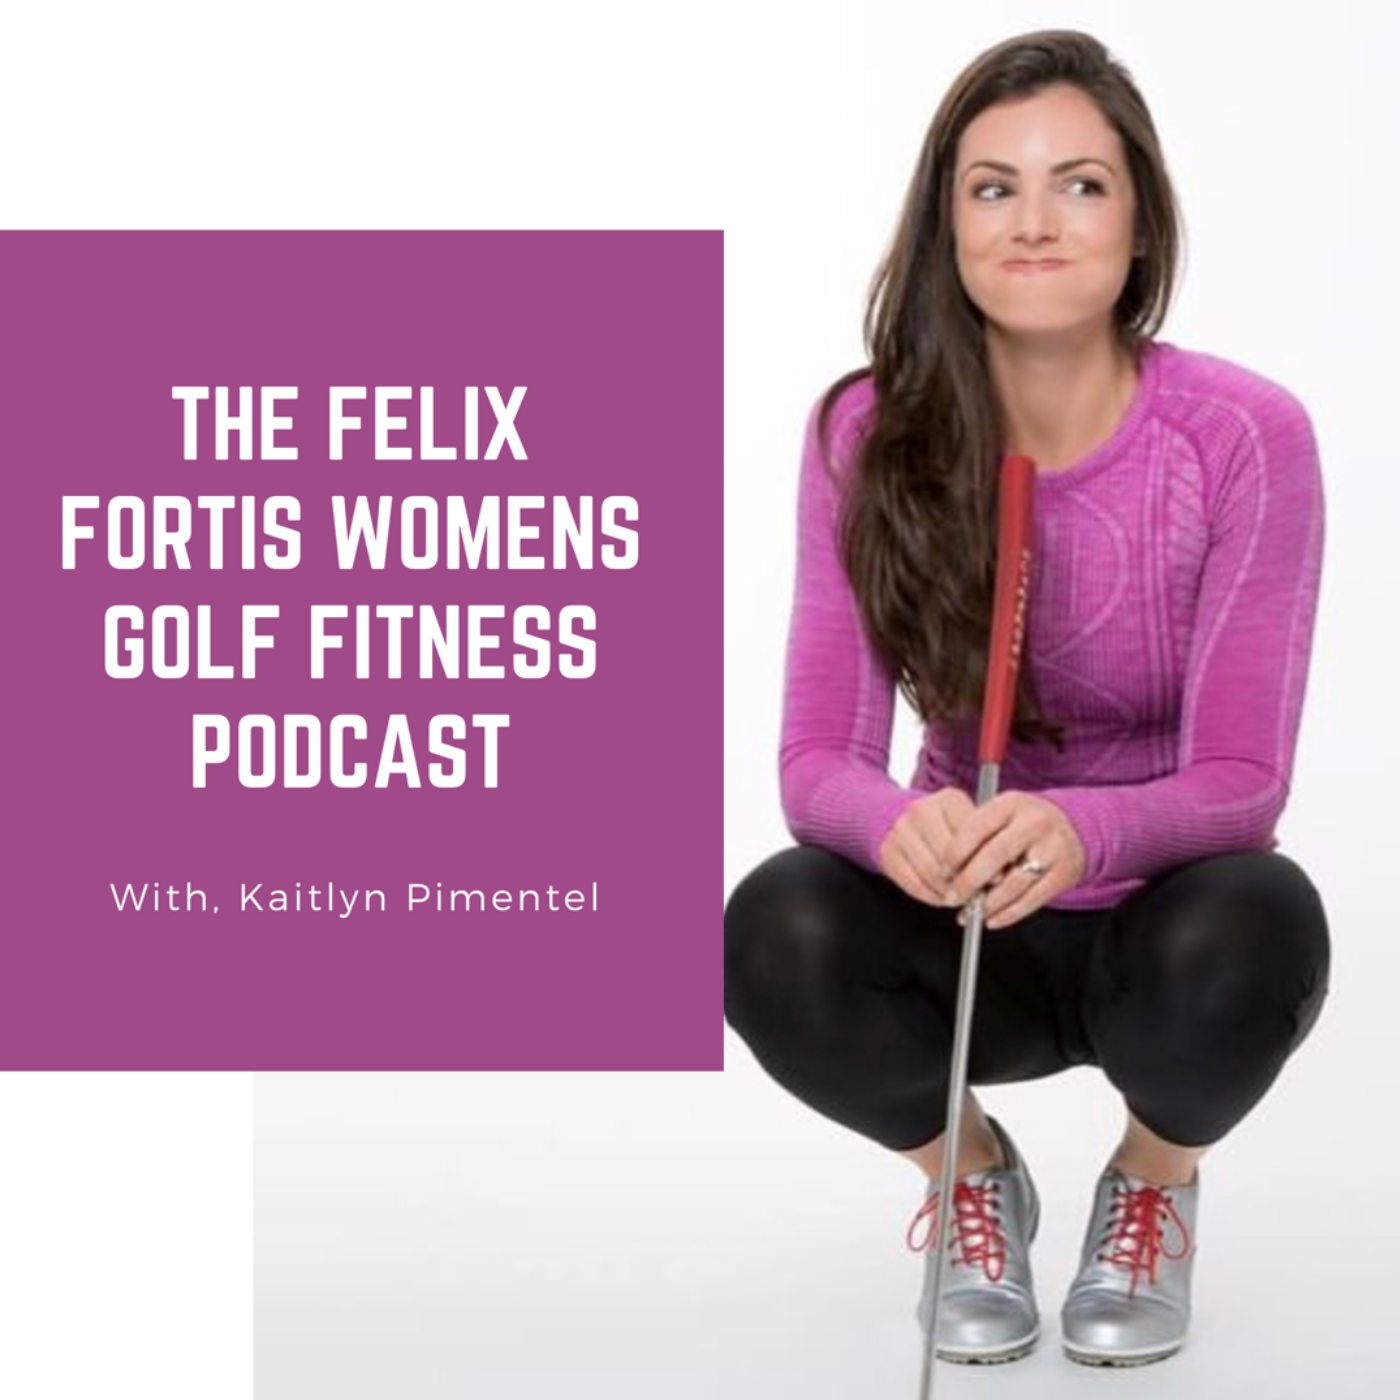 Felix Fortis Women's Golf Fitness Podcast show art